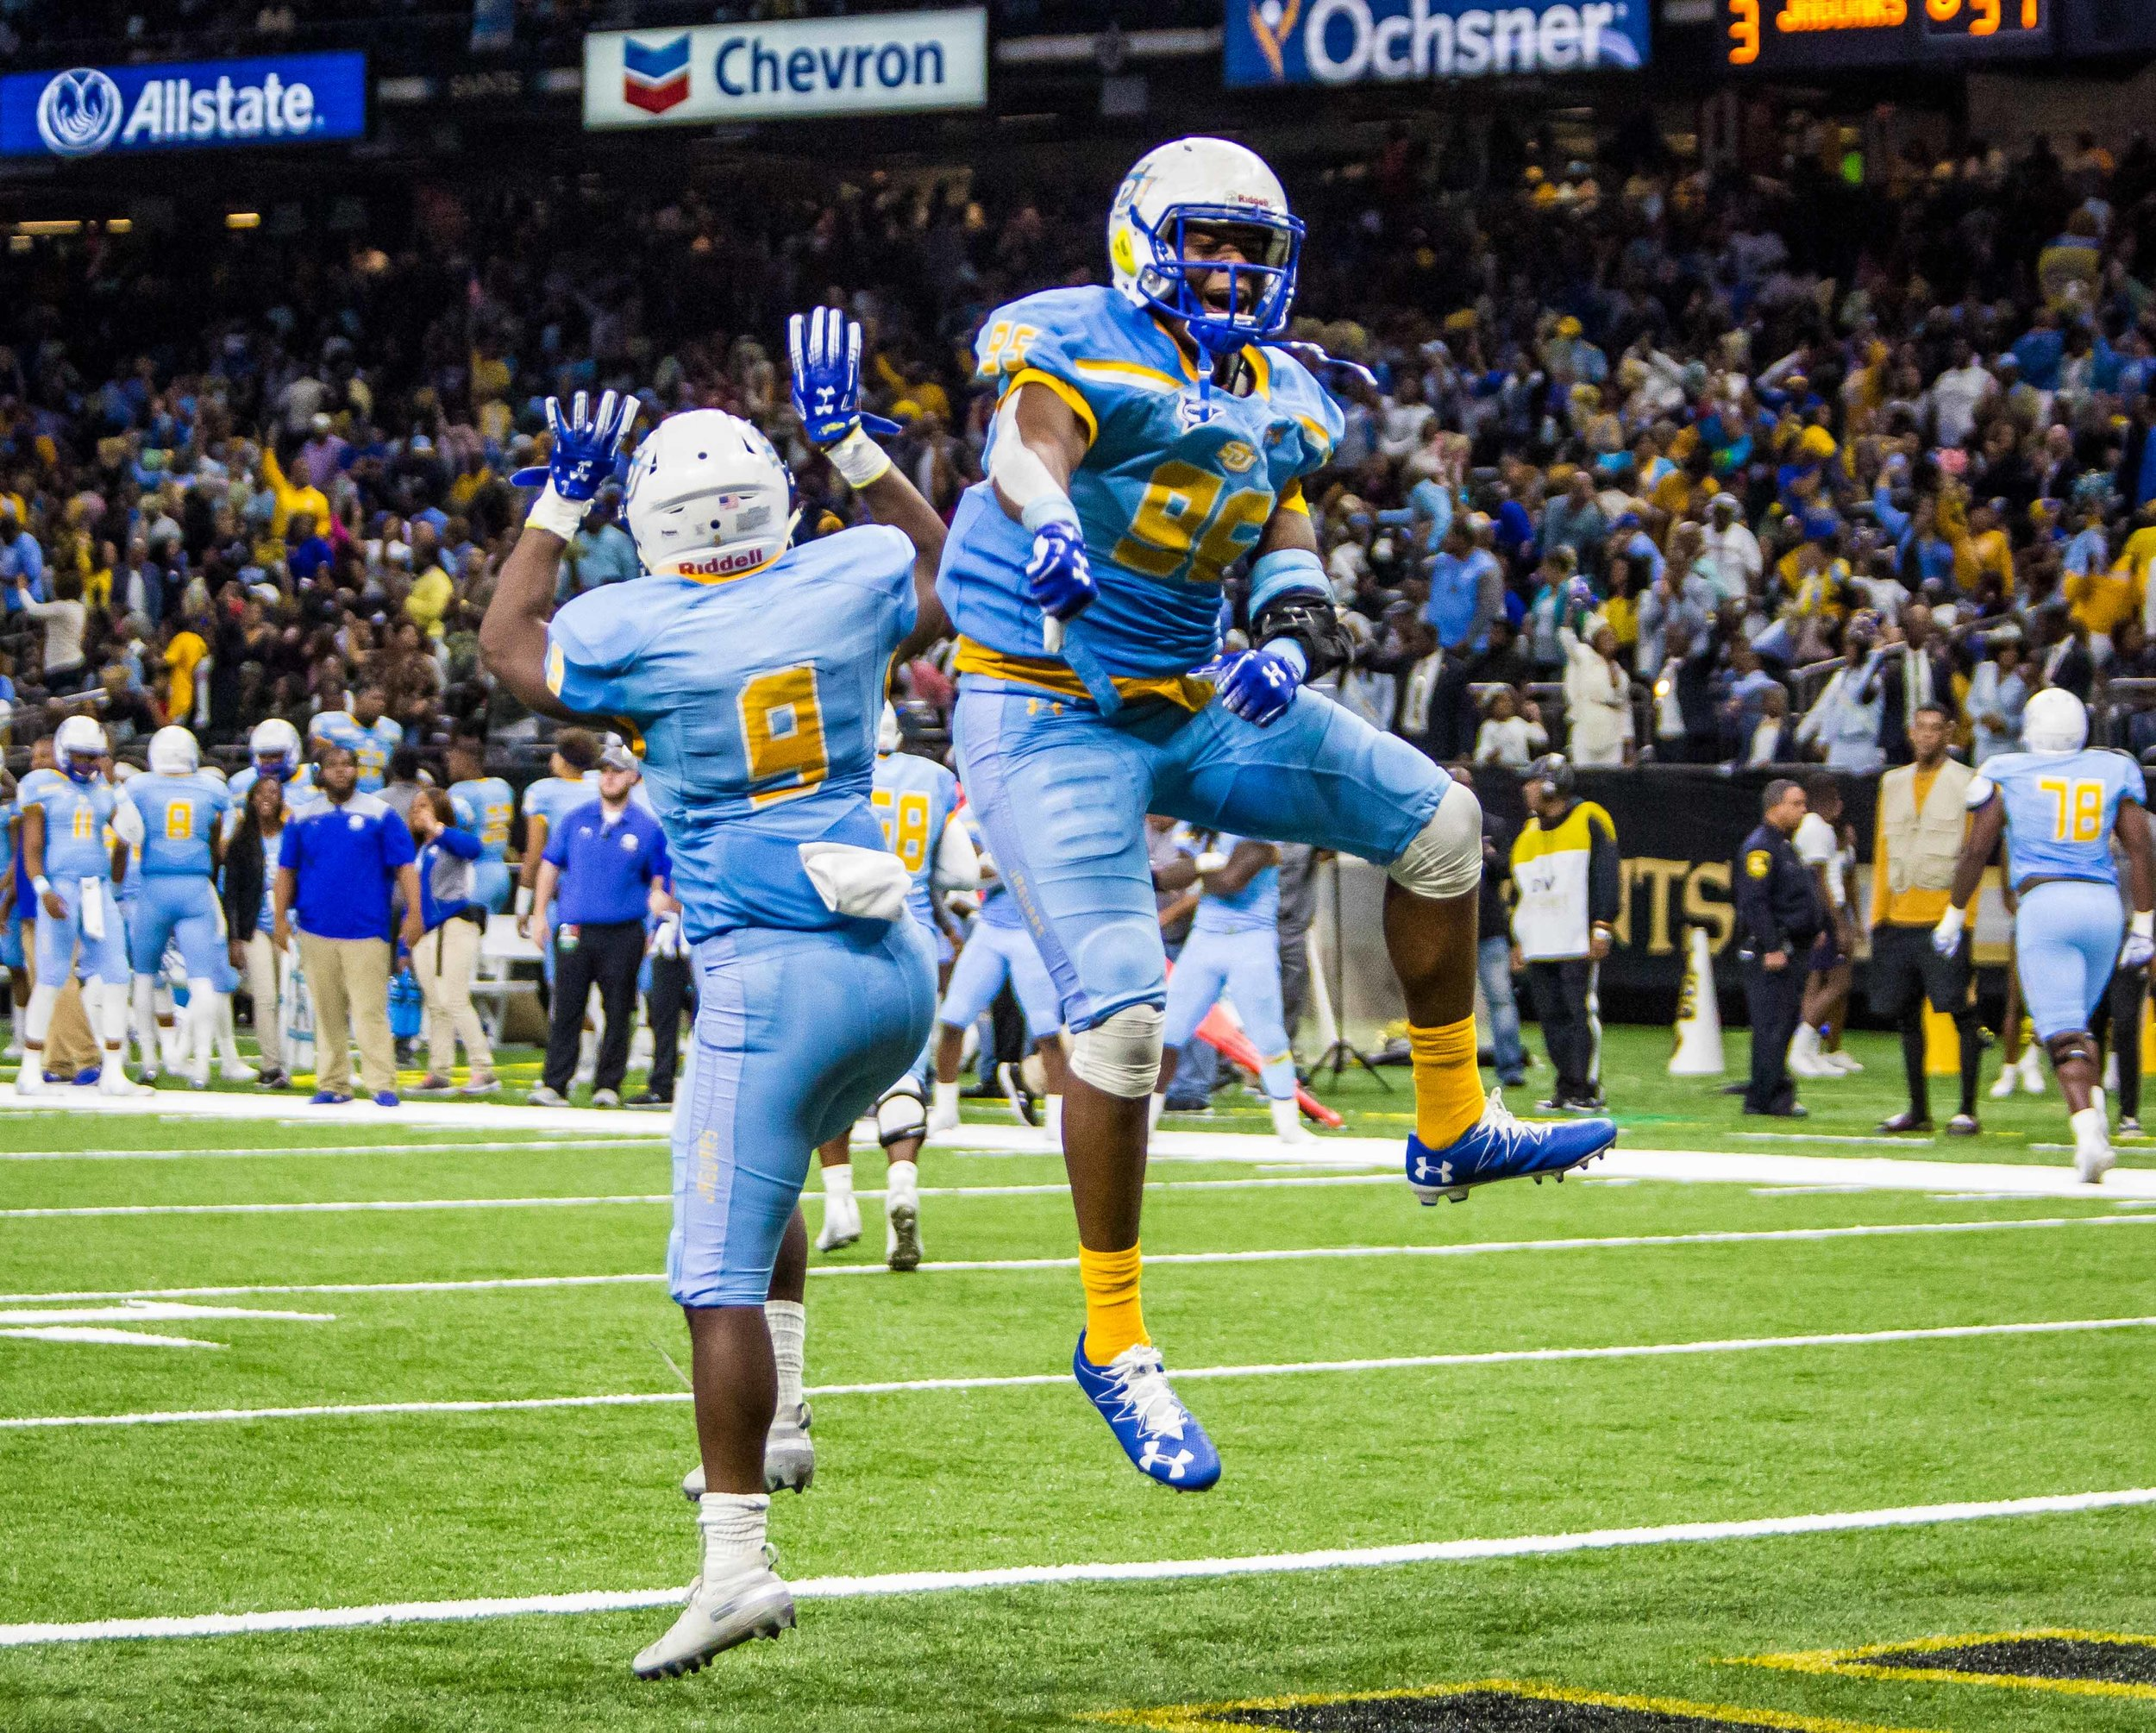 Southern University defensive lineman Tyran Nash (95) and Southern University running back Devon Benn (9) celebrate a touchdown during the second half of the 44th annual Bayou Classic on Saturday, Nov. 24, 2018, at the Mercedes-Benz Superdom. Southern won against Grambling State State University 38-28.